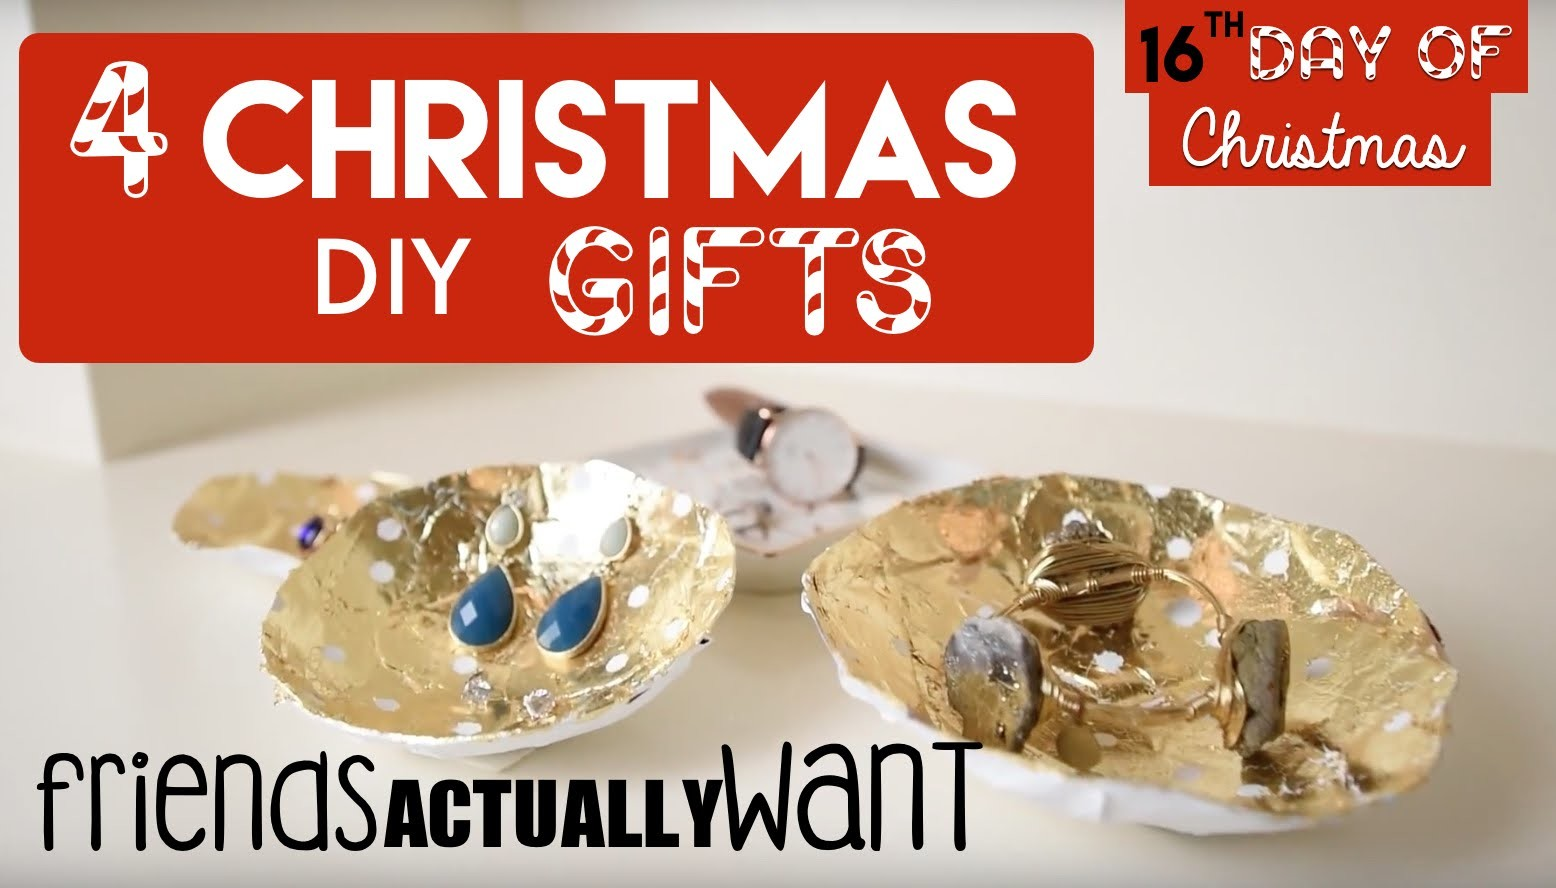 4 DIY Christmas Gifts Your Friends ACTUALLY Want! | 16th Day of Christmas 2015!